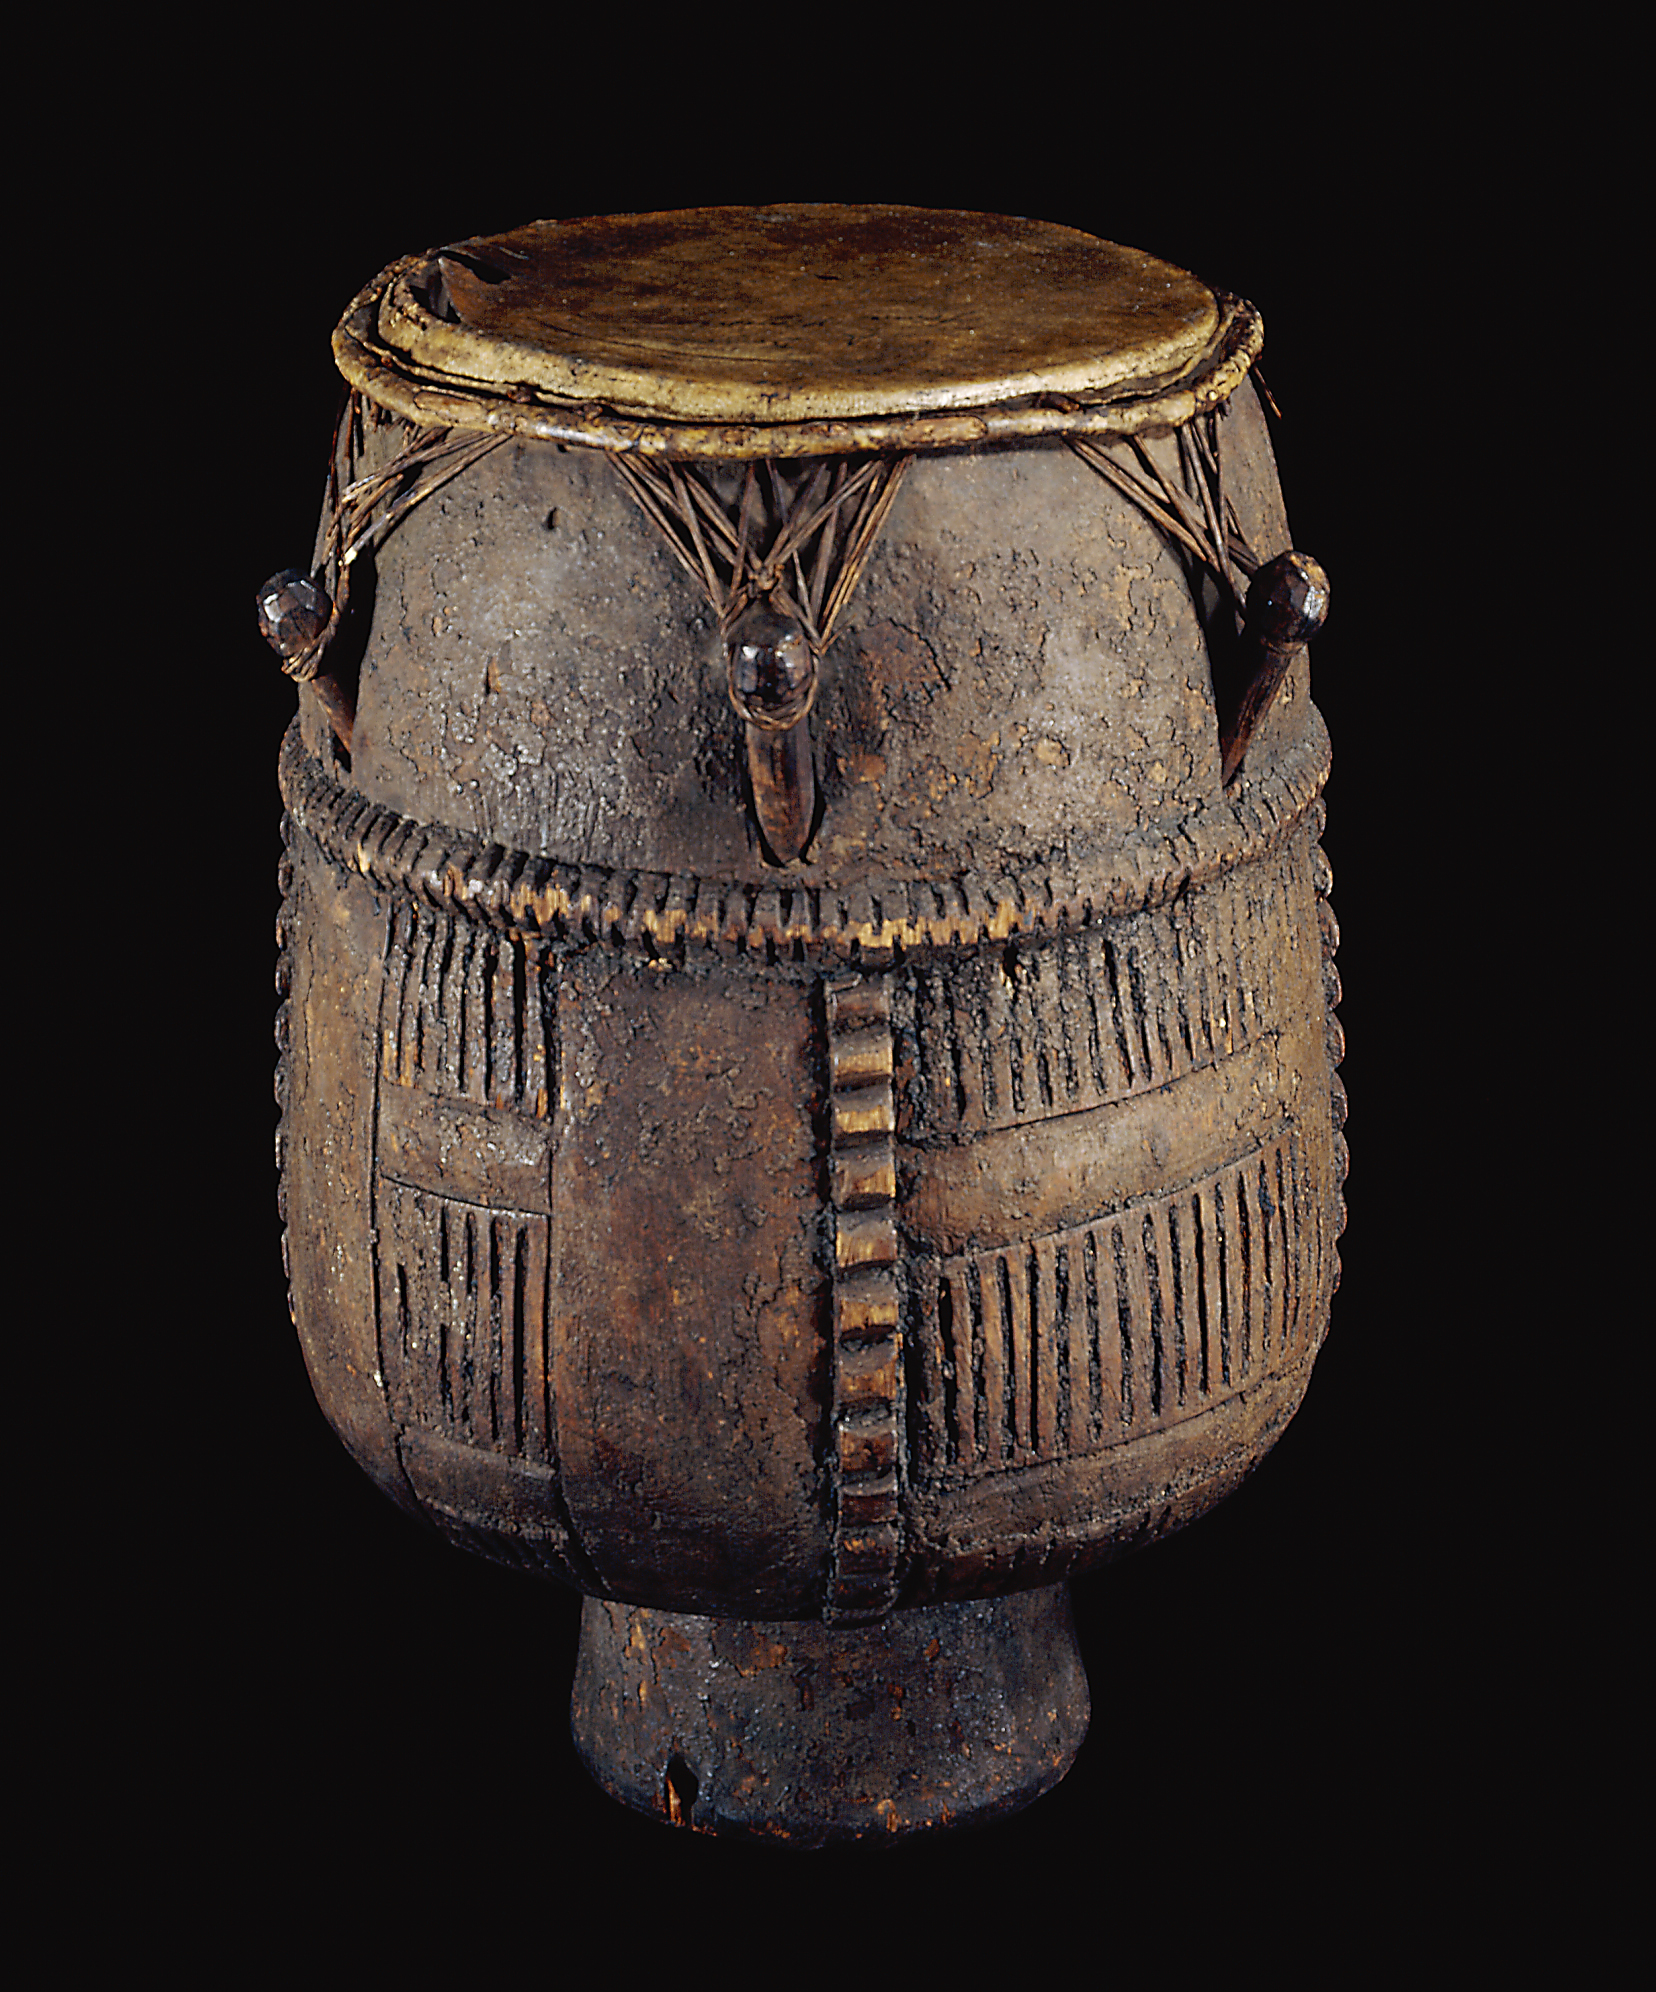 Image of drum on black background.